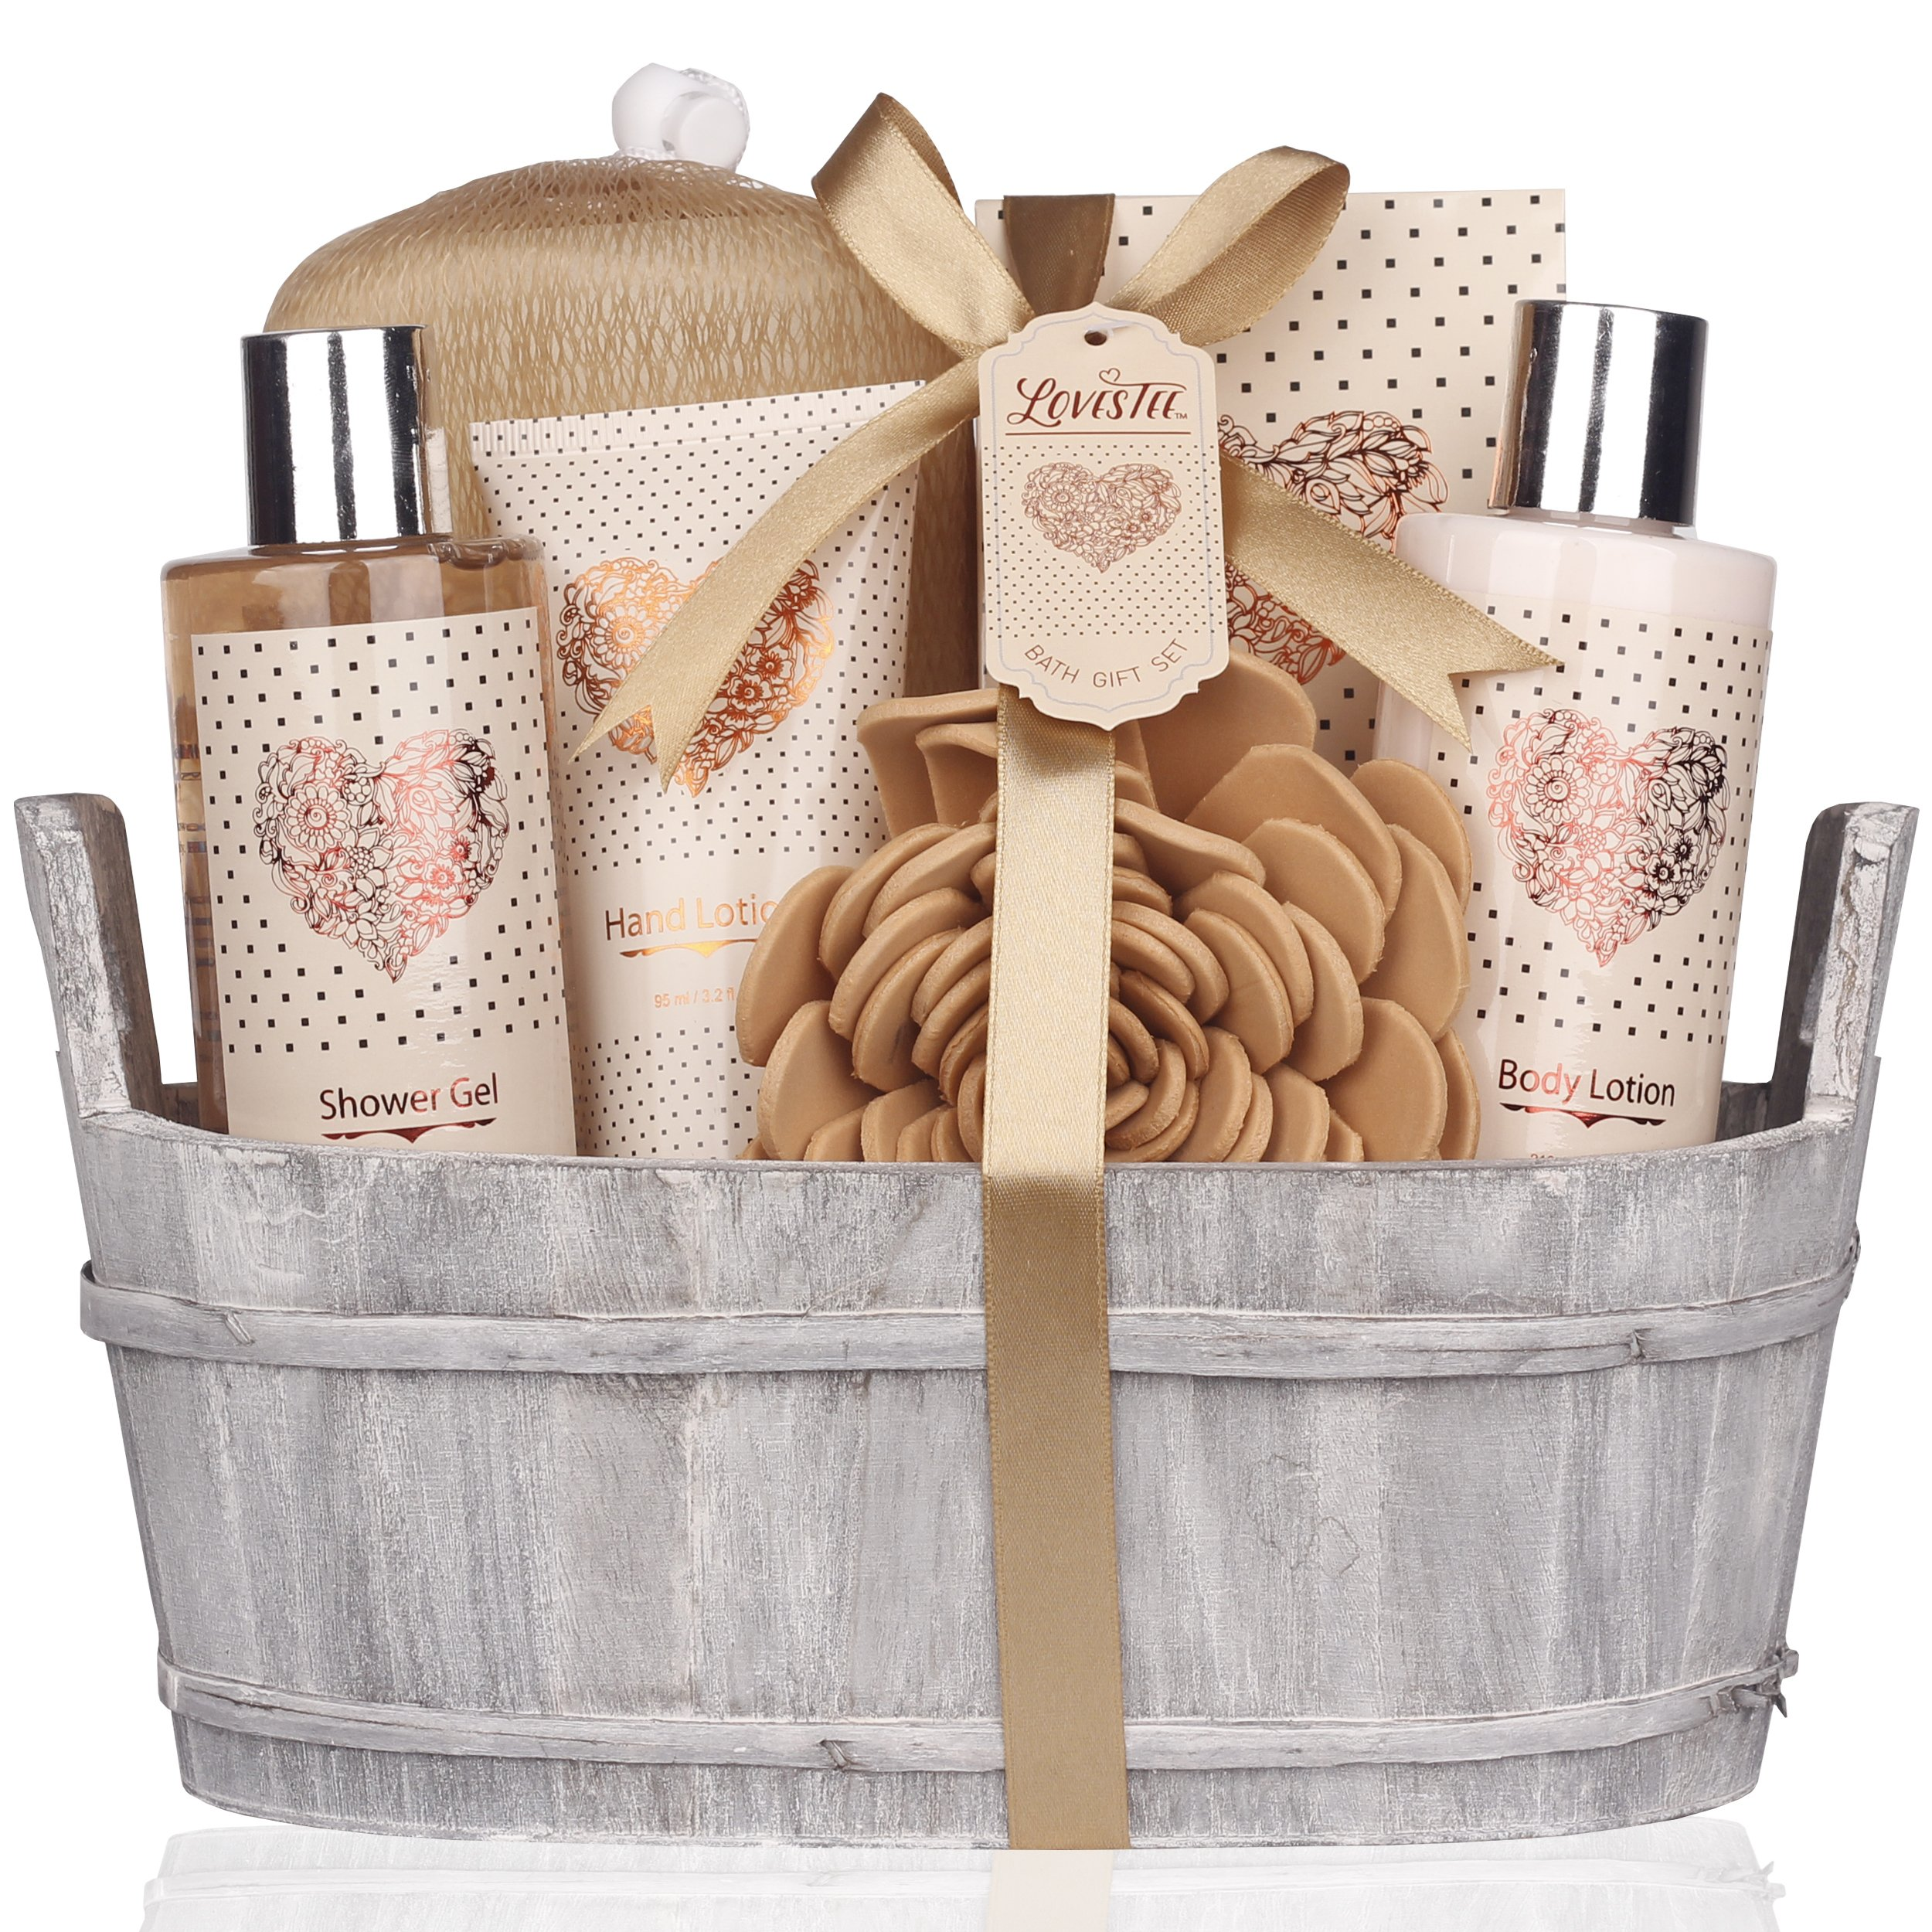 Mothers Day Gift Idea Spa Gift Basket – Bath and Body Set with Vanilla Fragrance by Lovestee - Bath Gift Basket Includes Shower Gel, Body Lotion, Hand Lotion, Bath Salt, Eva Sponge and a Bath Puff